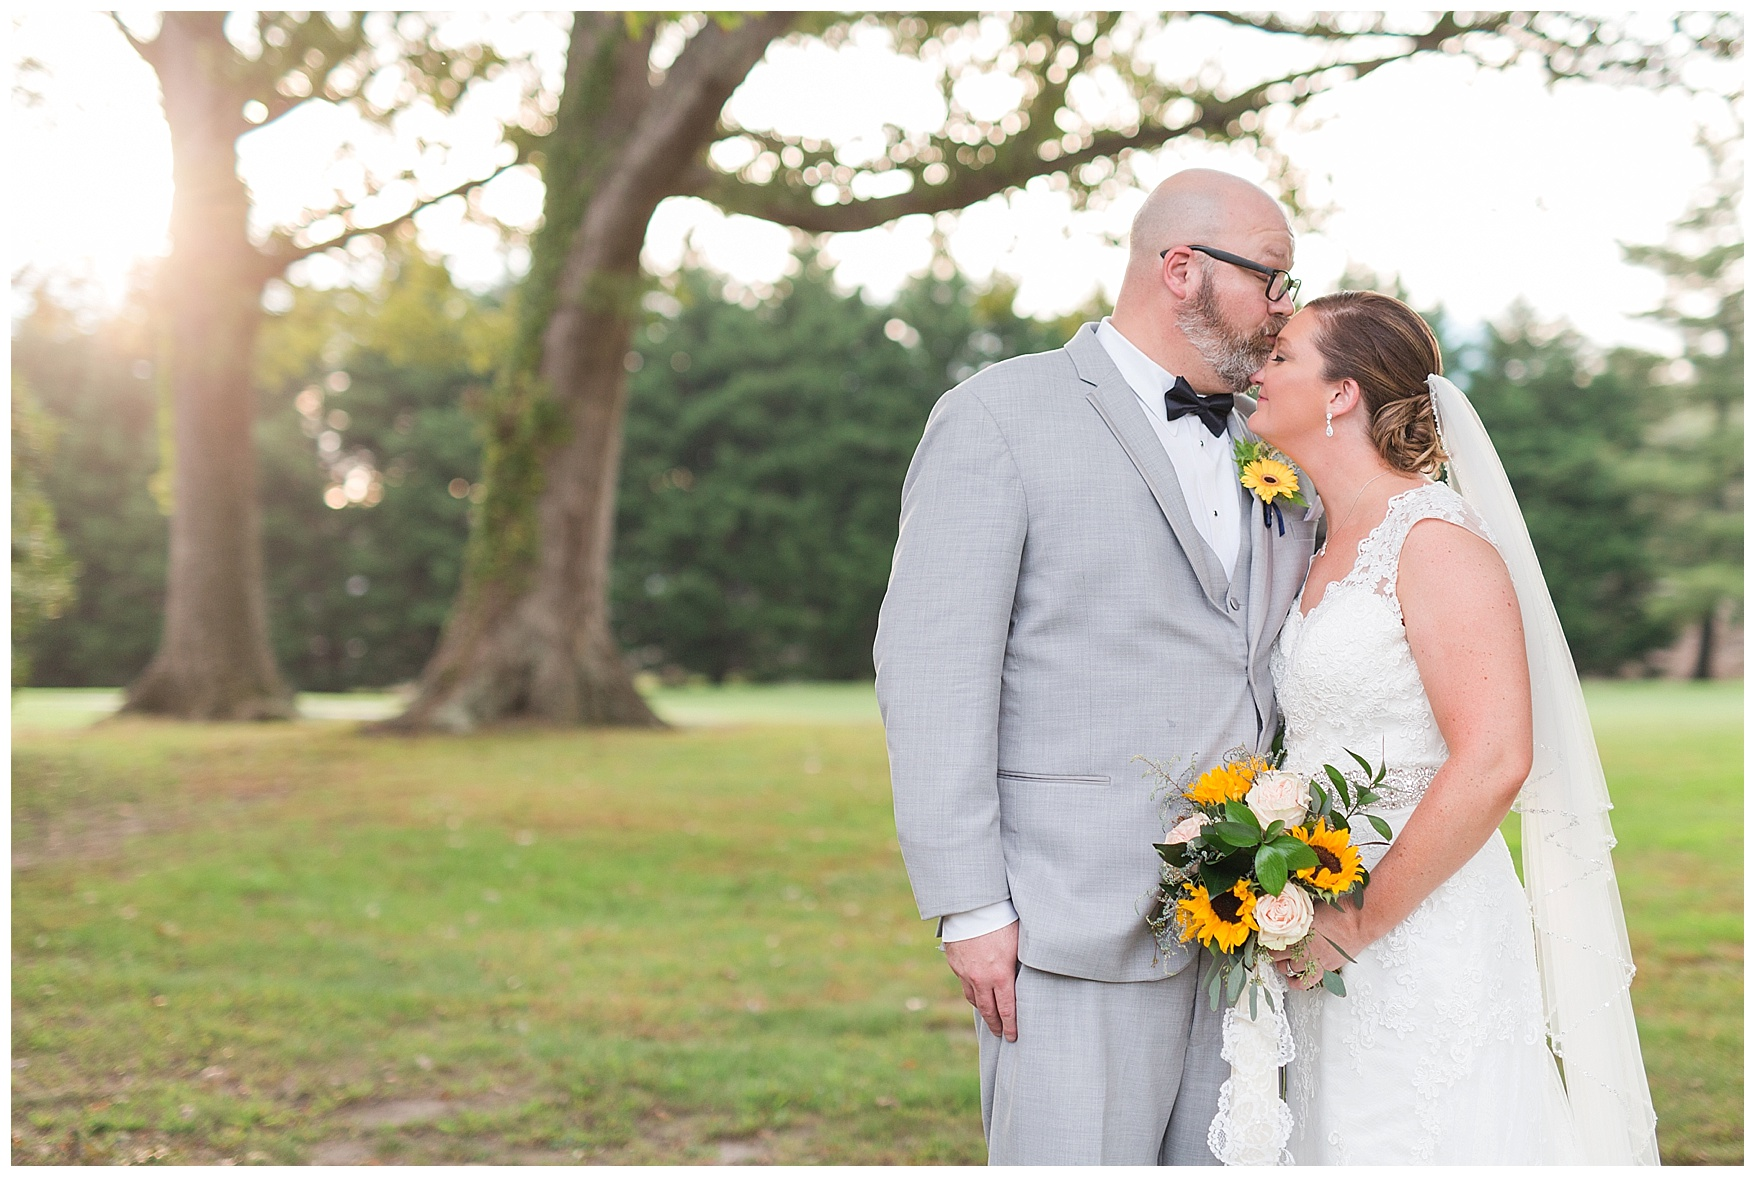 Danville Golf Club Wedding || Danville, Lynchburg, and Charlottesville Wedding Photographer || Fall Wedding in Central Virginia || www.ashleyeiban.com